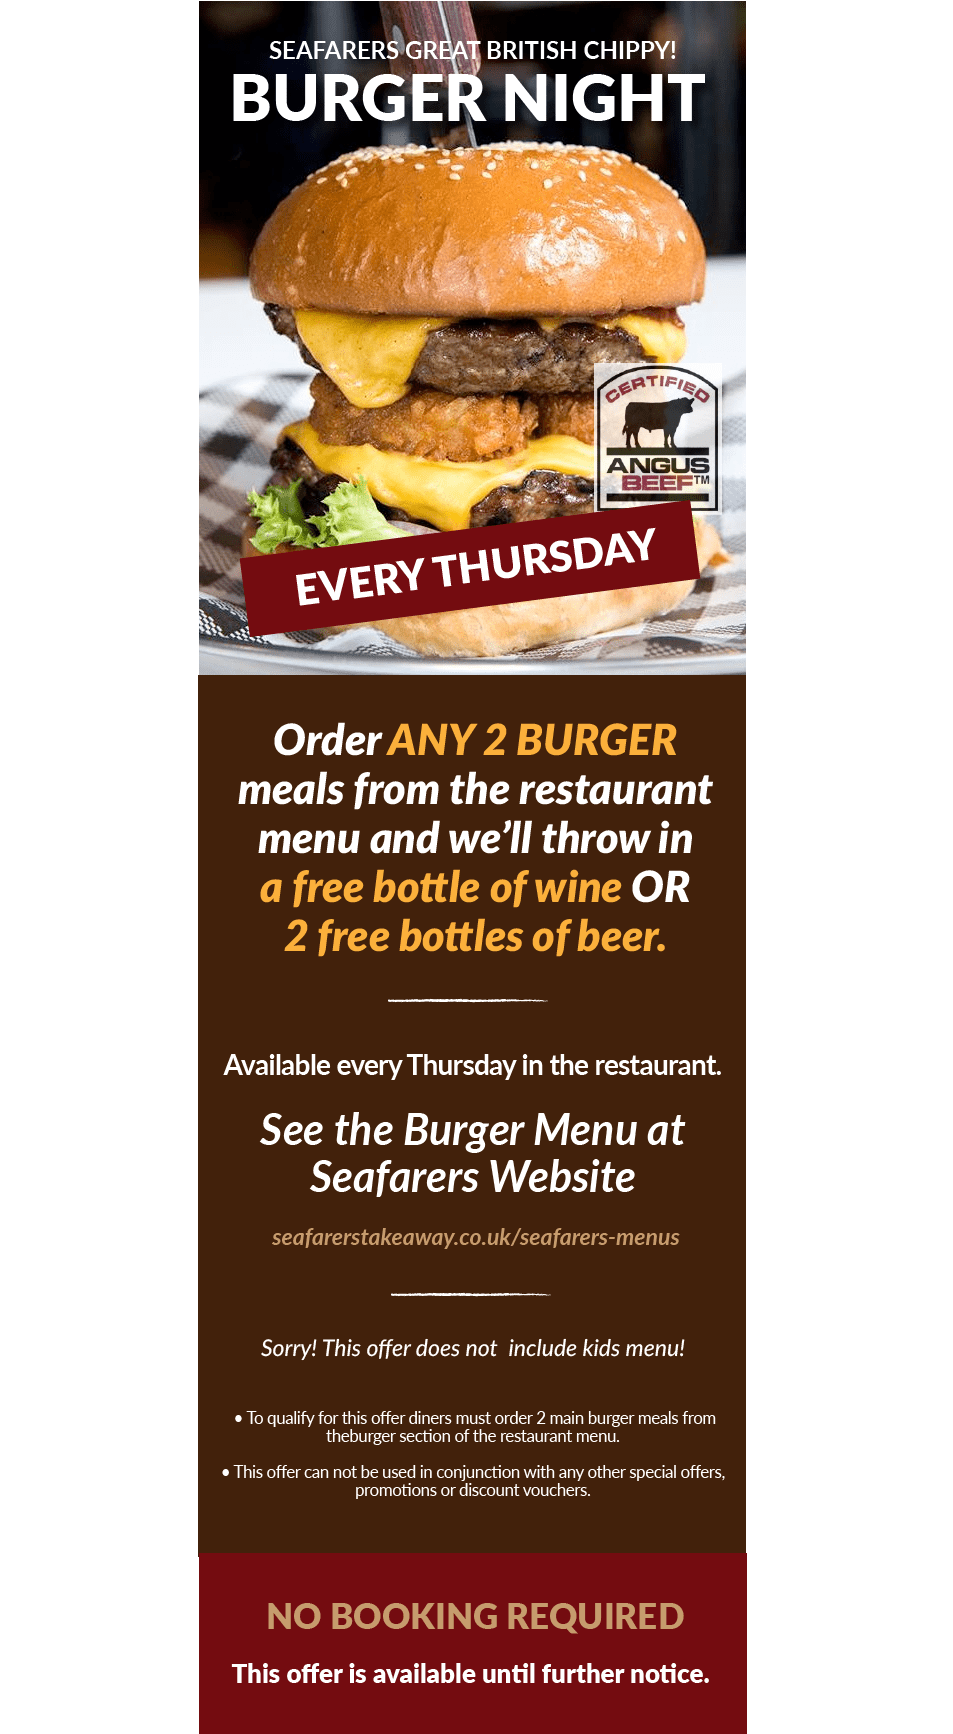 Get a FREE bottle of wine or 2 FREE bottles of beer with any two burgers from our menu.